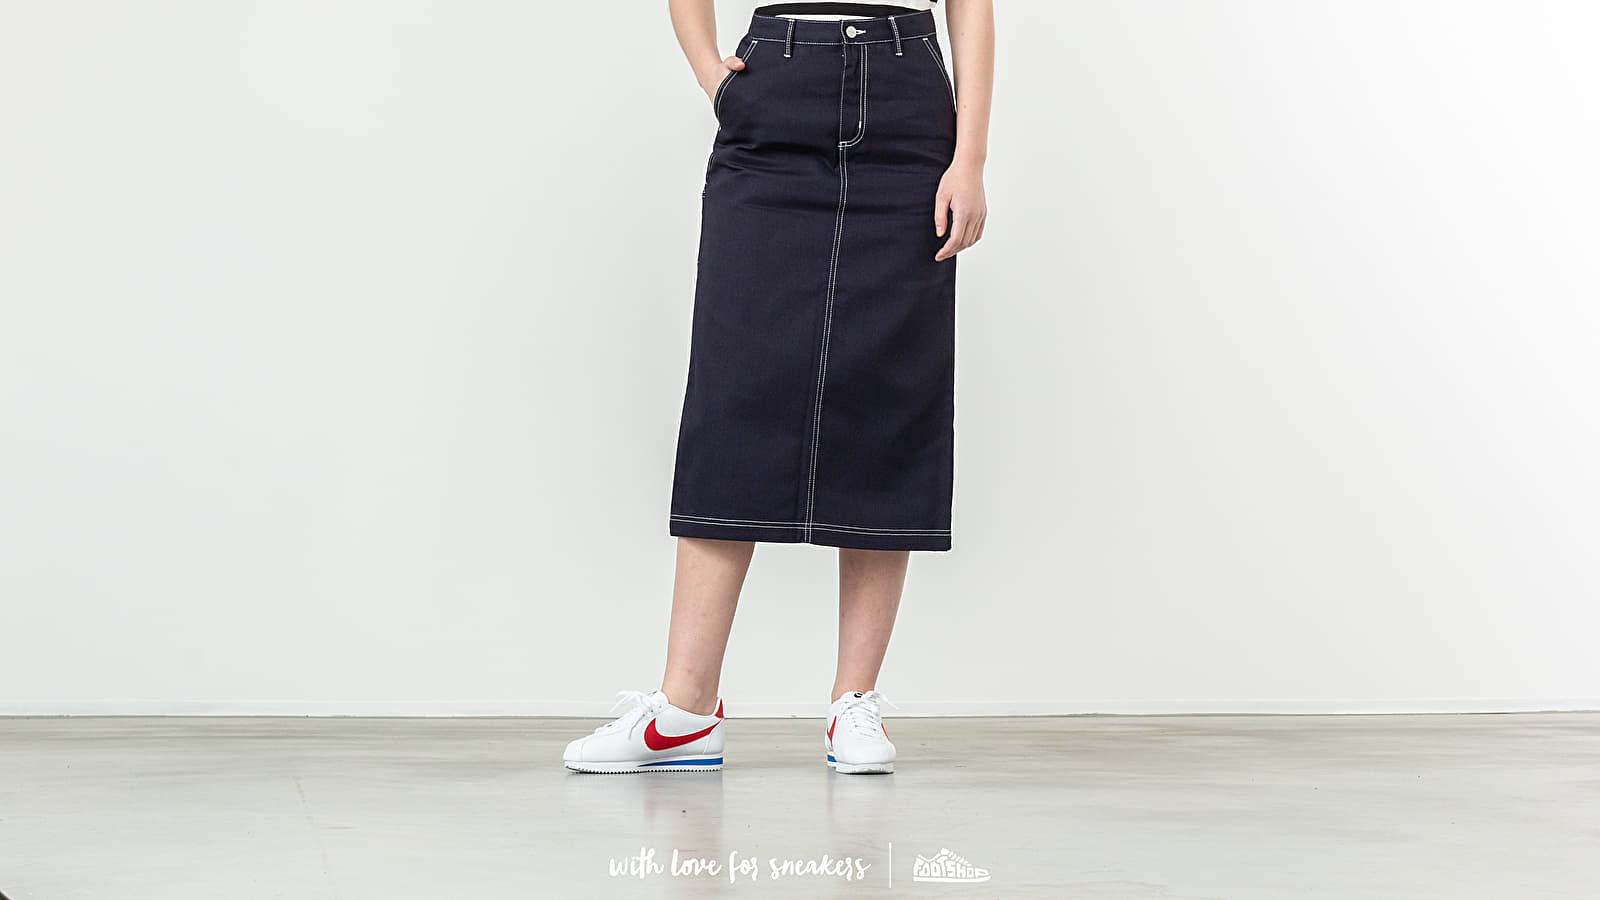 Carhartt WIP Pierce Skirt